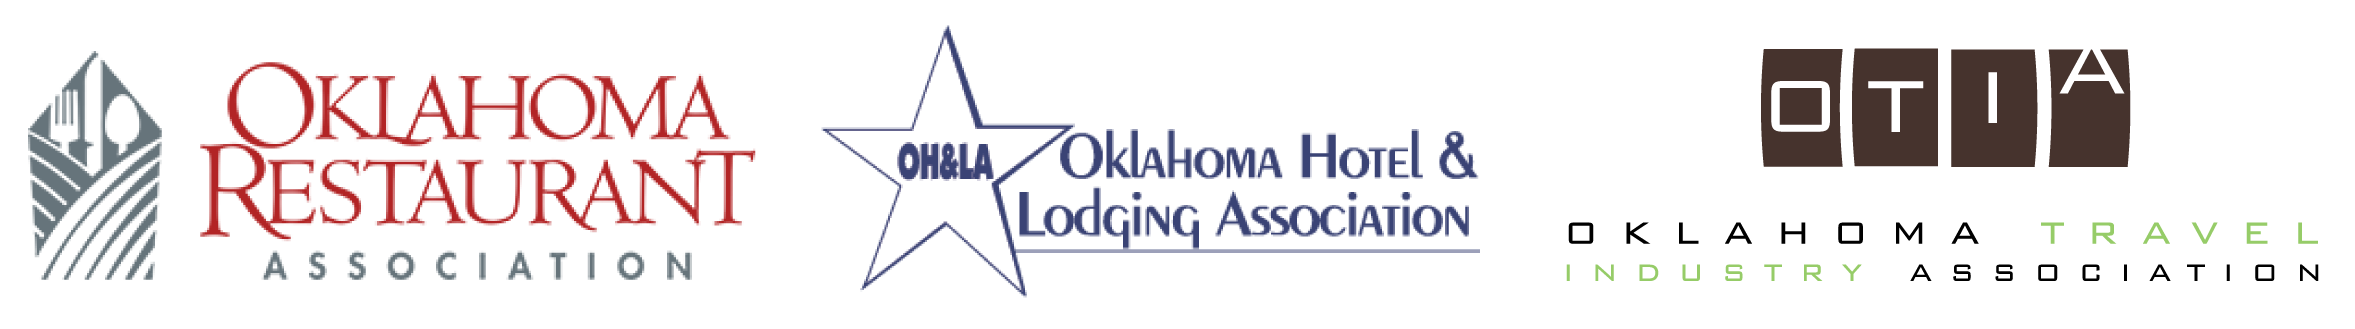 Oklahoma Hospitality Online Buyers Guide